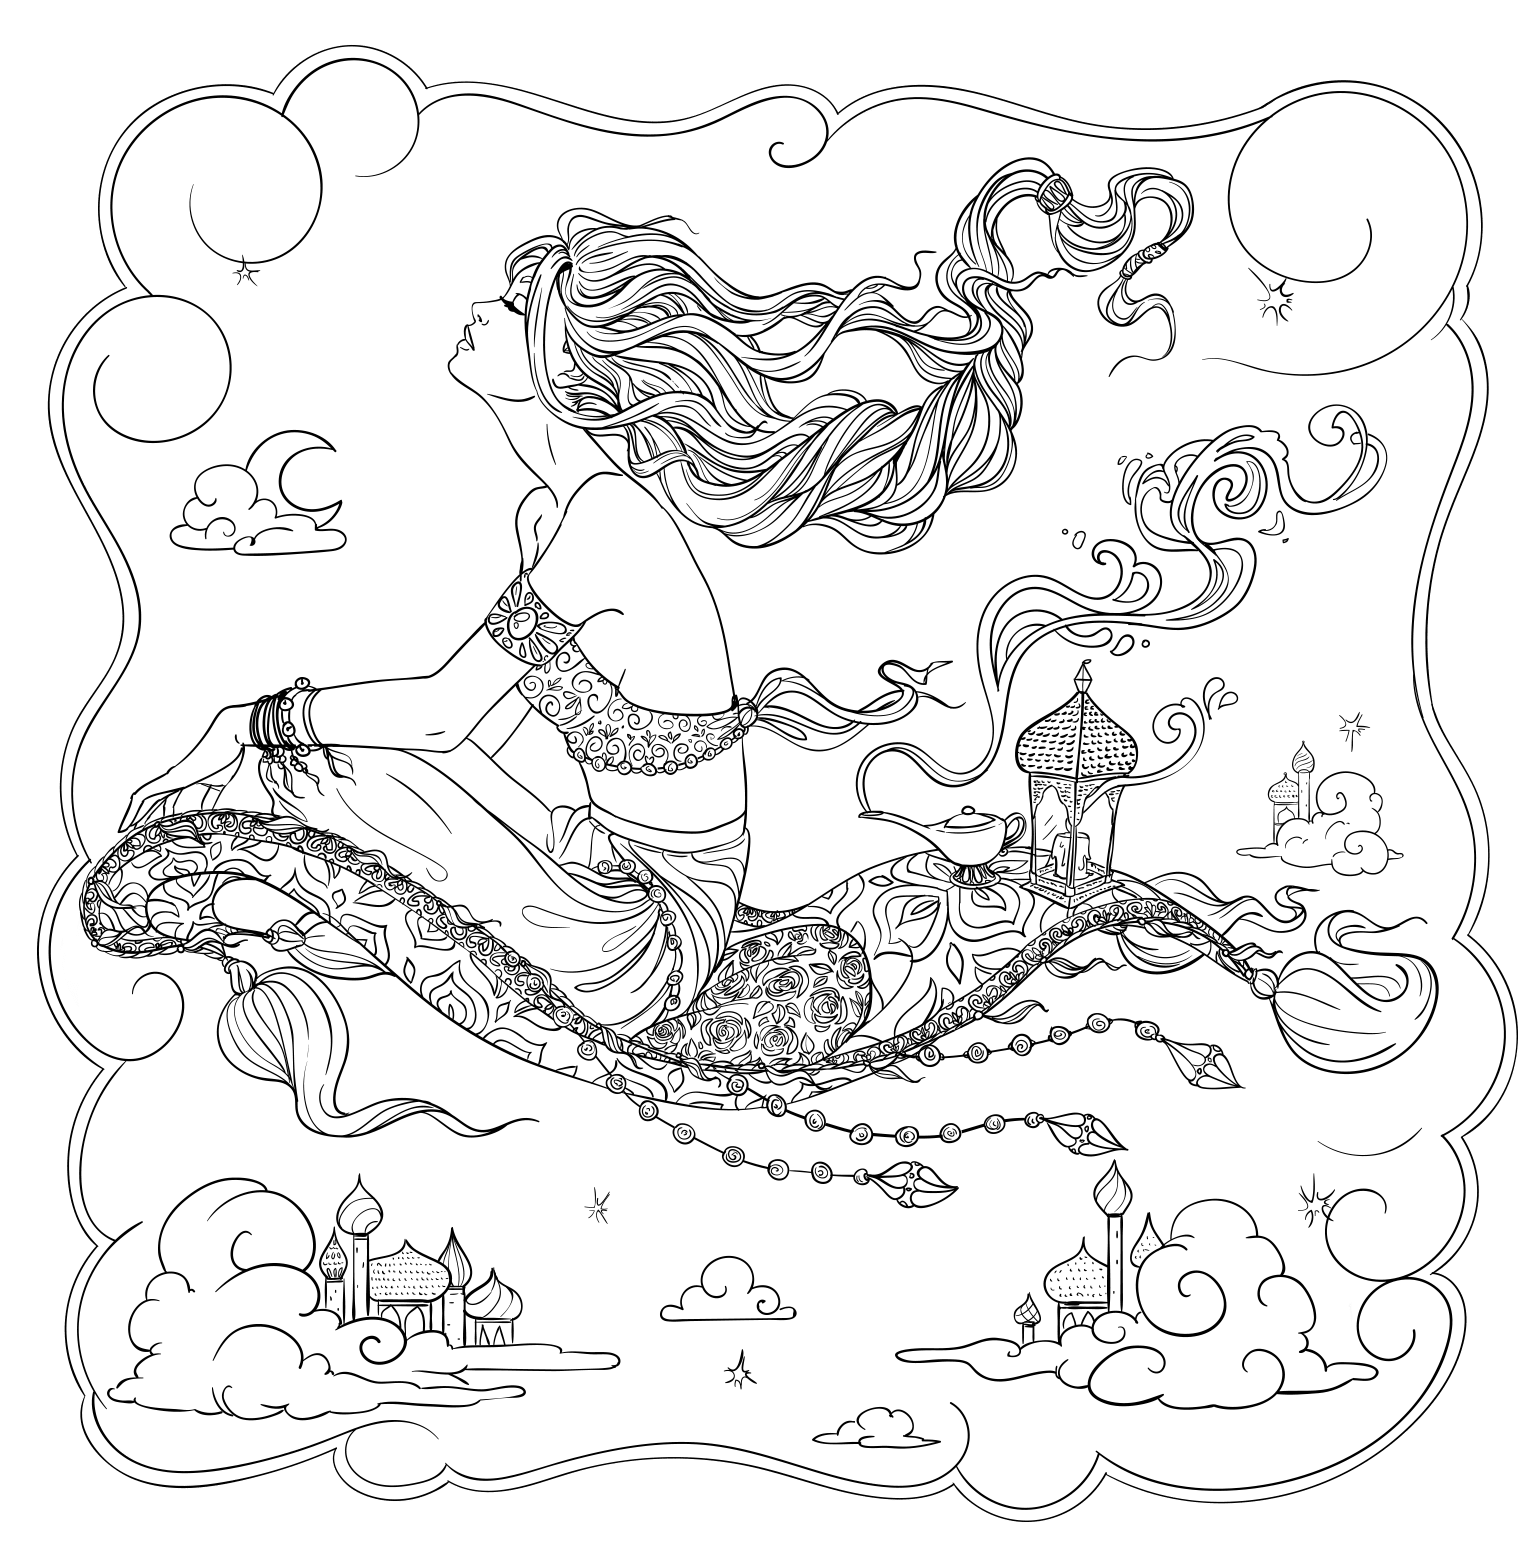 Line artsy free adult. Stitch clipart angel colouring page